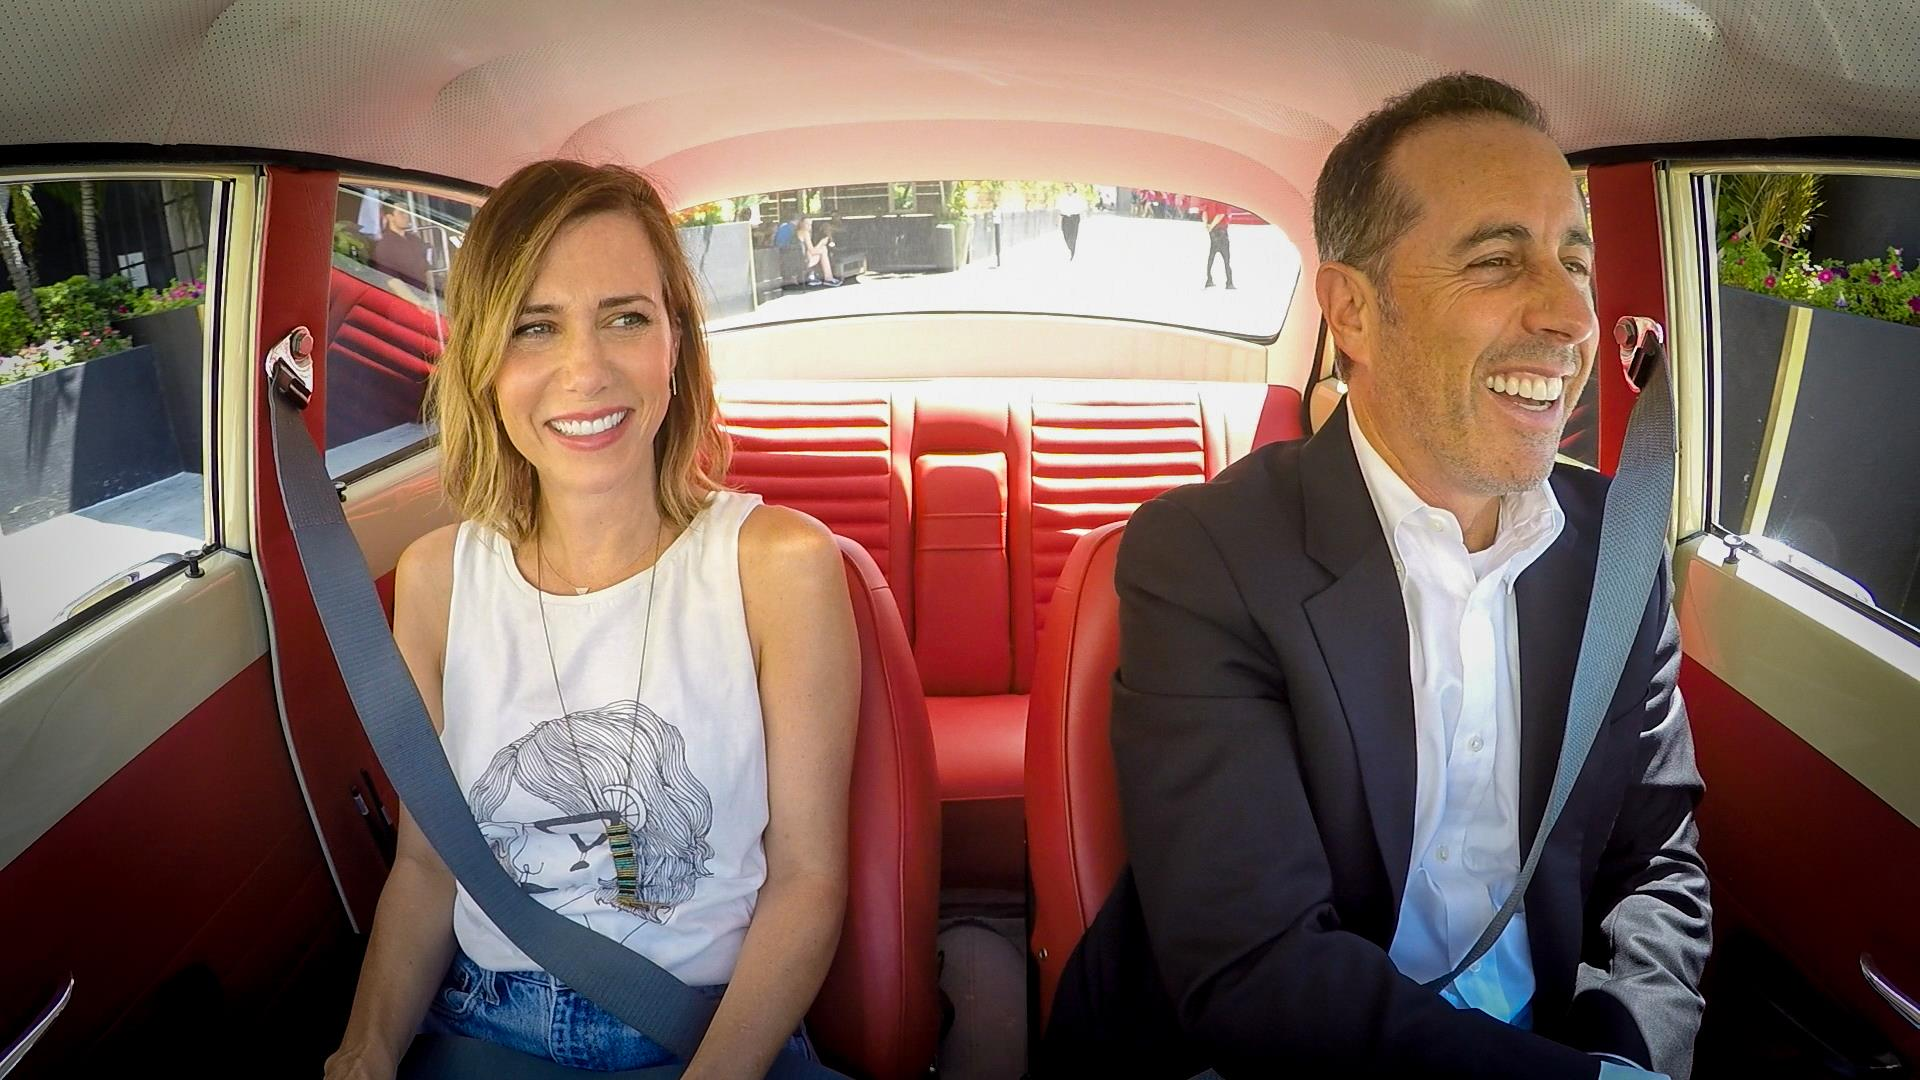 Netflix bags Jerry Seinfeld and Amazon lands ... the Grateful Dead